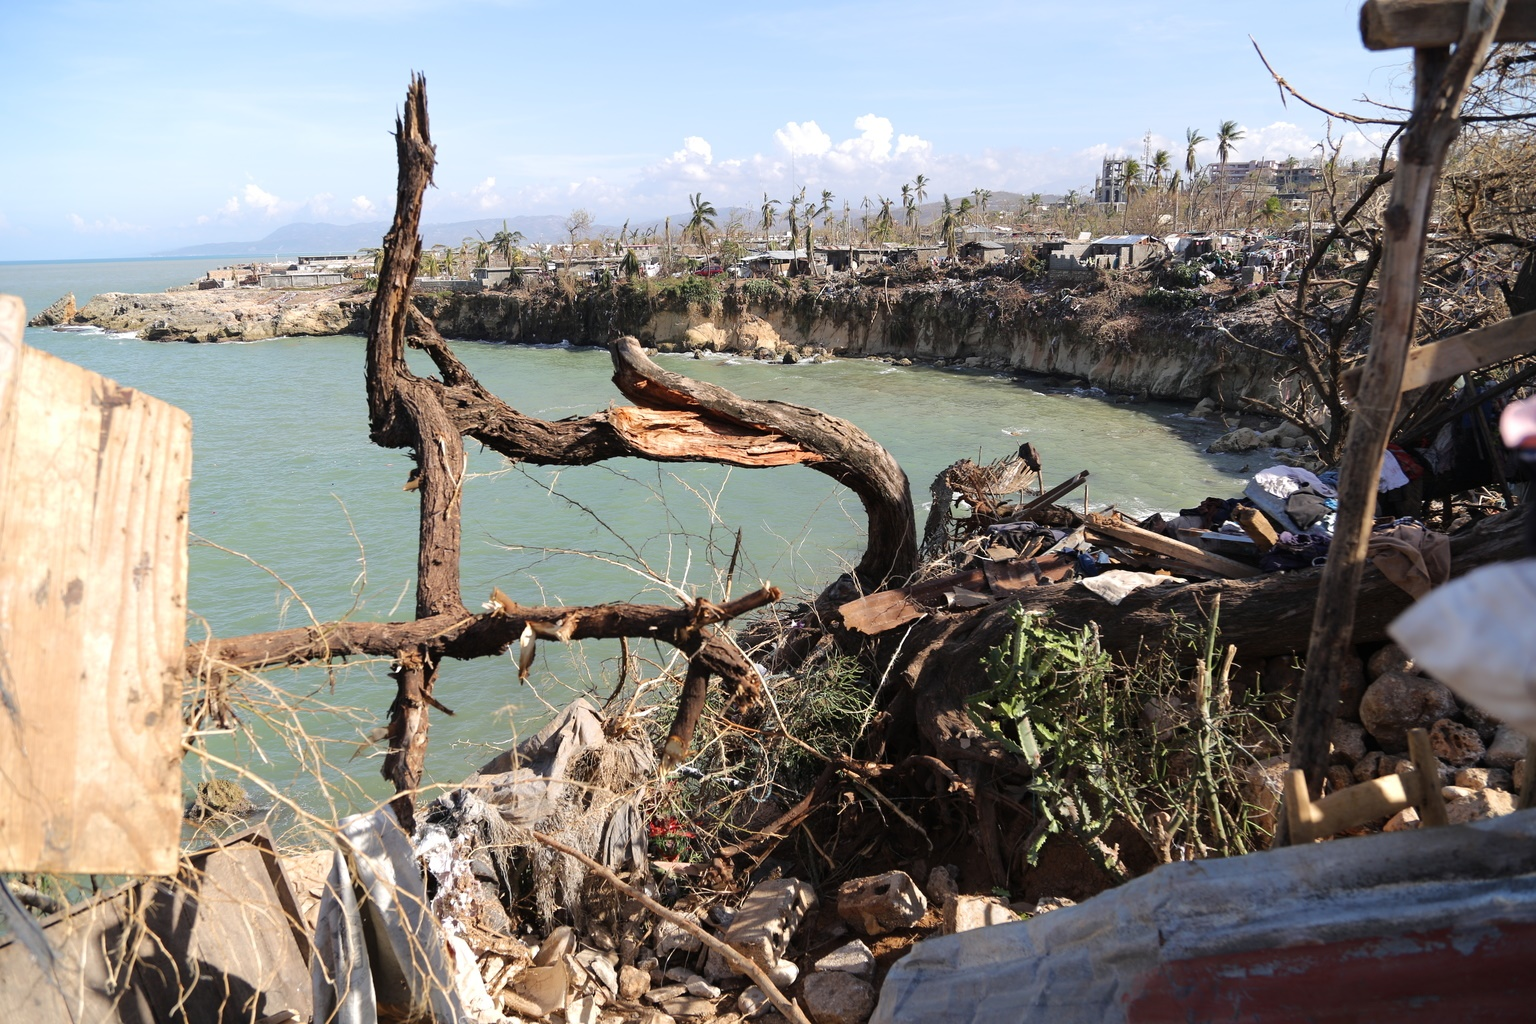 A view of destroyed buildings at water's edge.